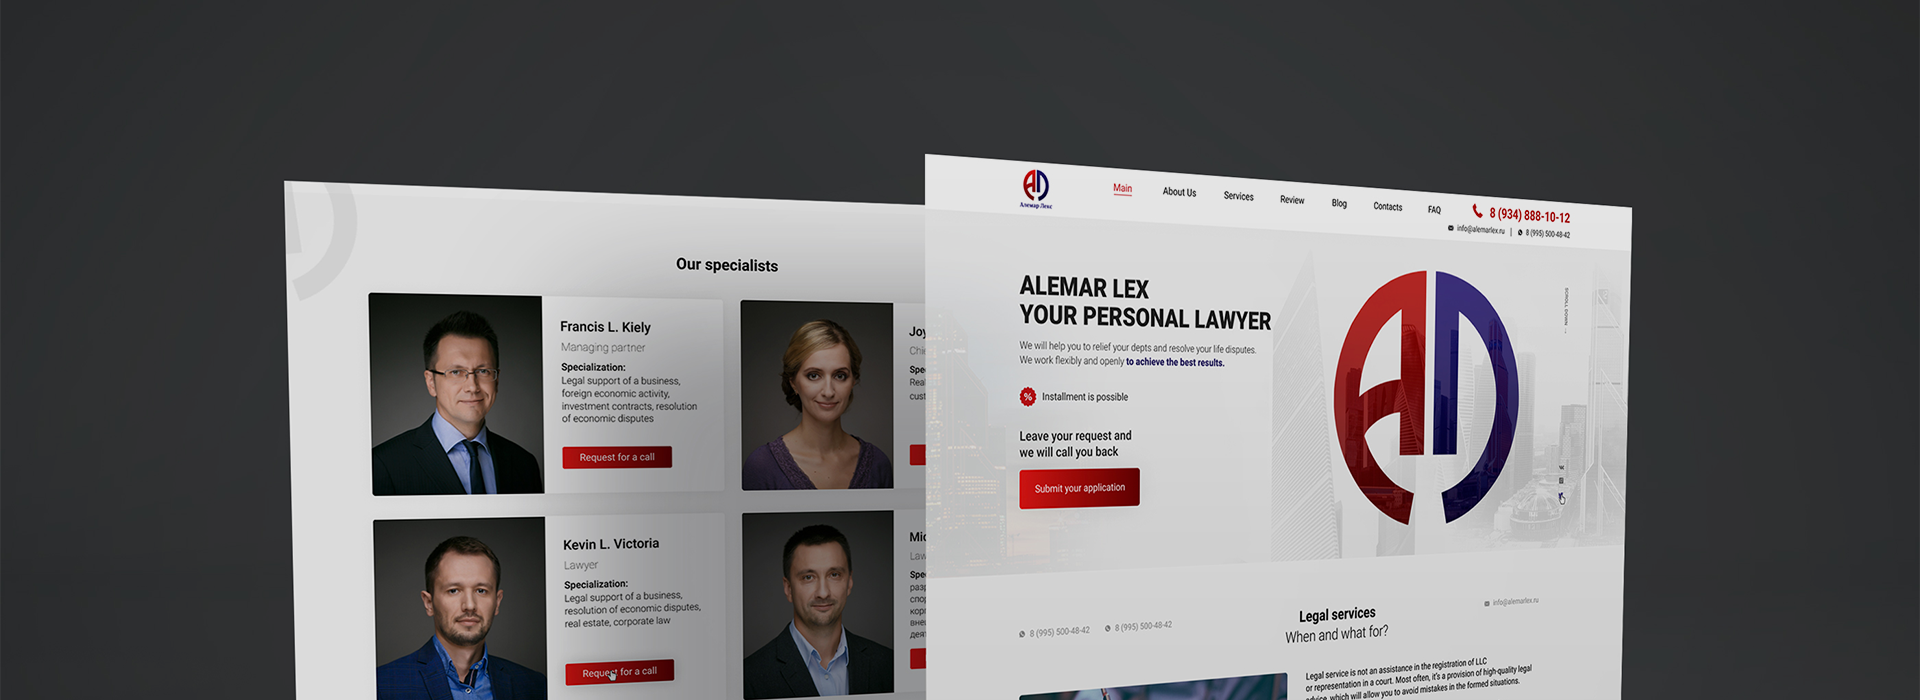 Turnkey landing page and website Alemar Lex